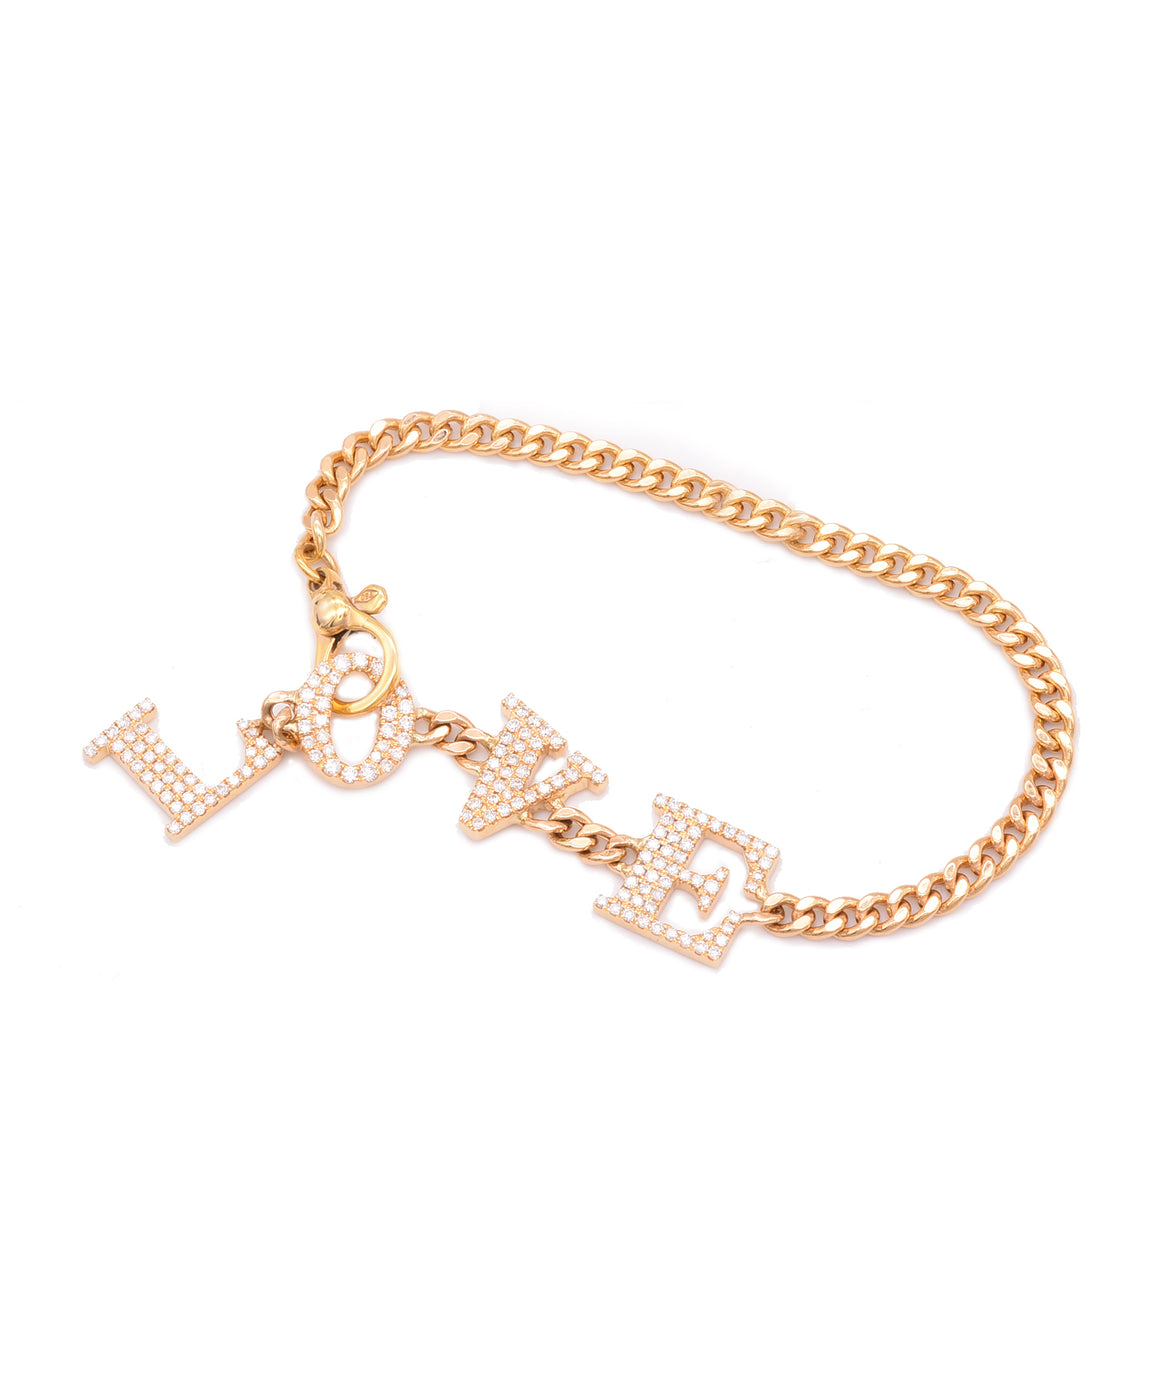 Diamond Love Bracelet - Lesley Ann Jewels